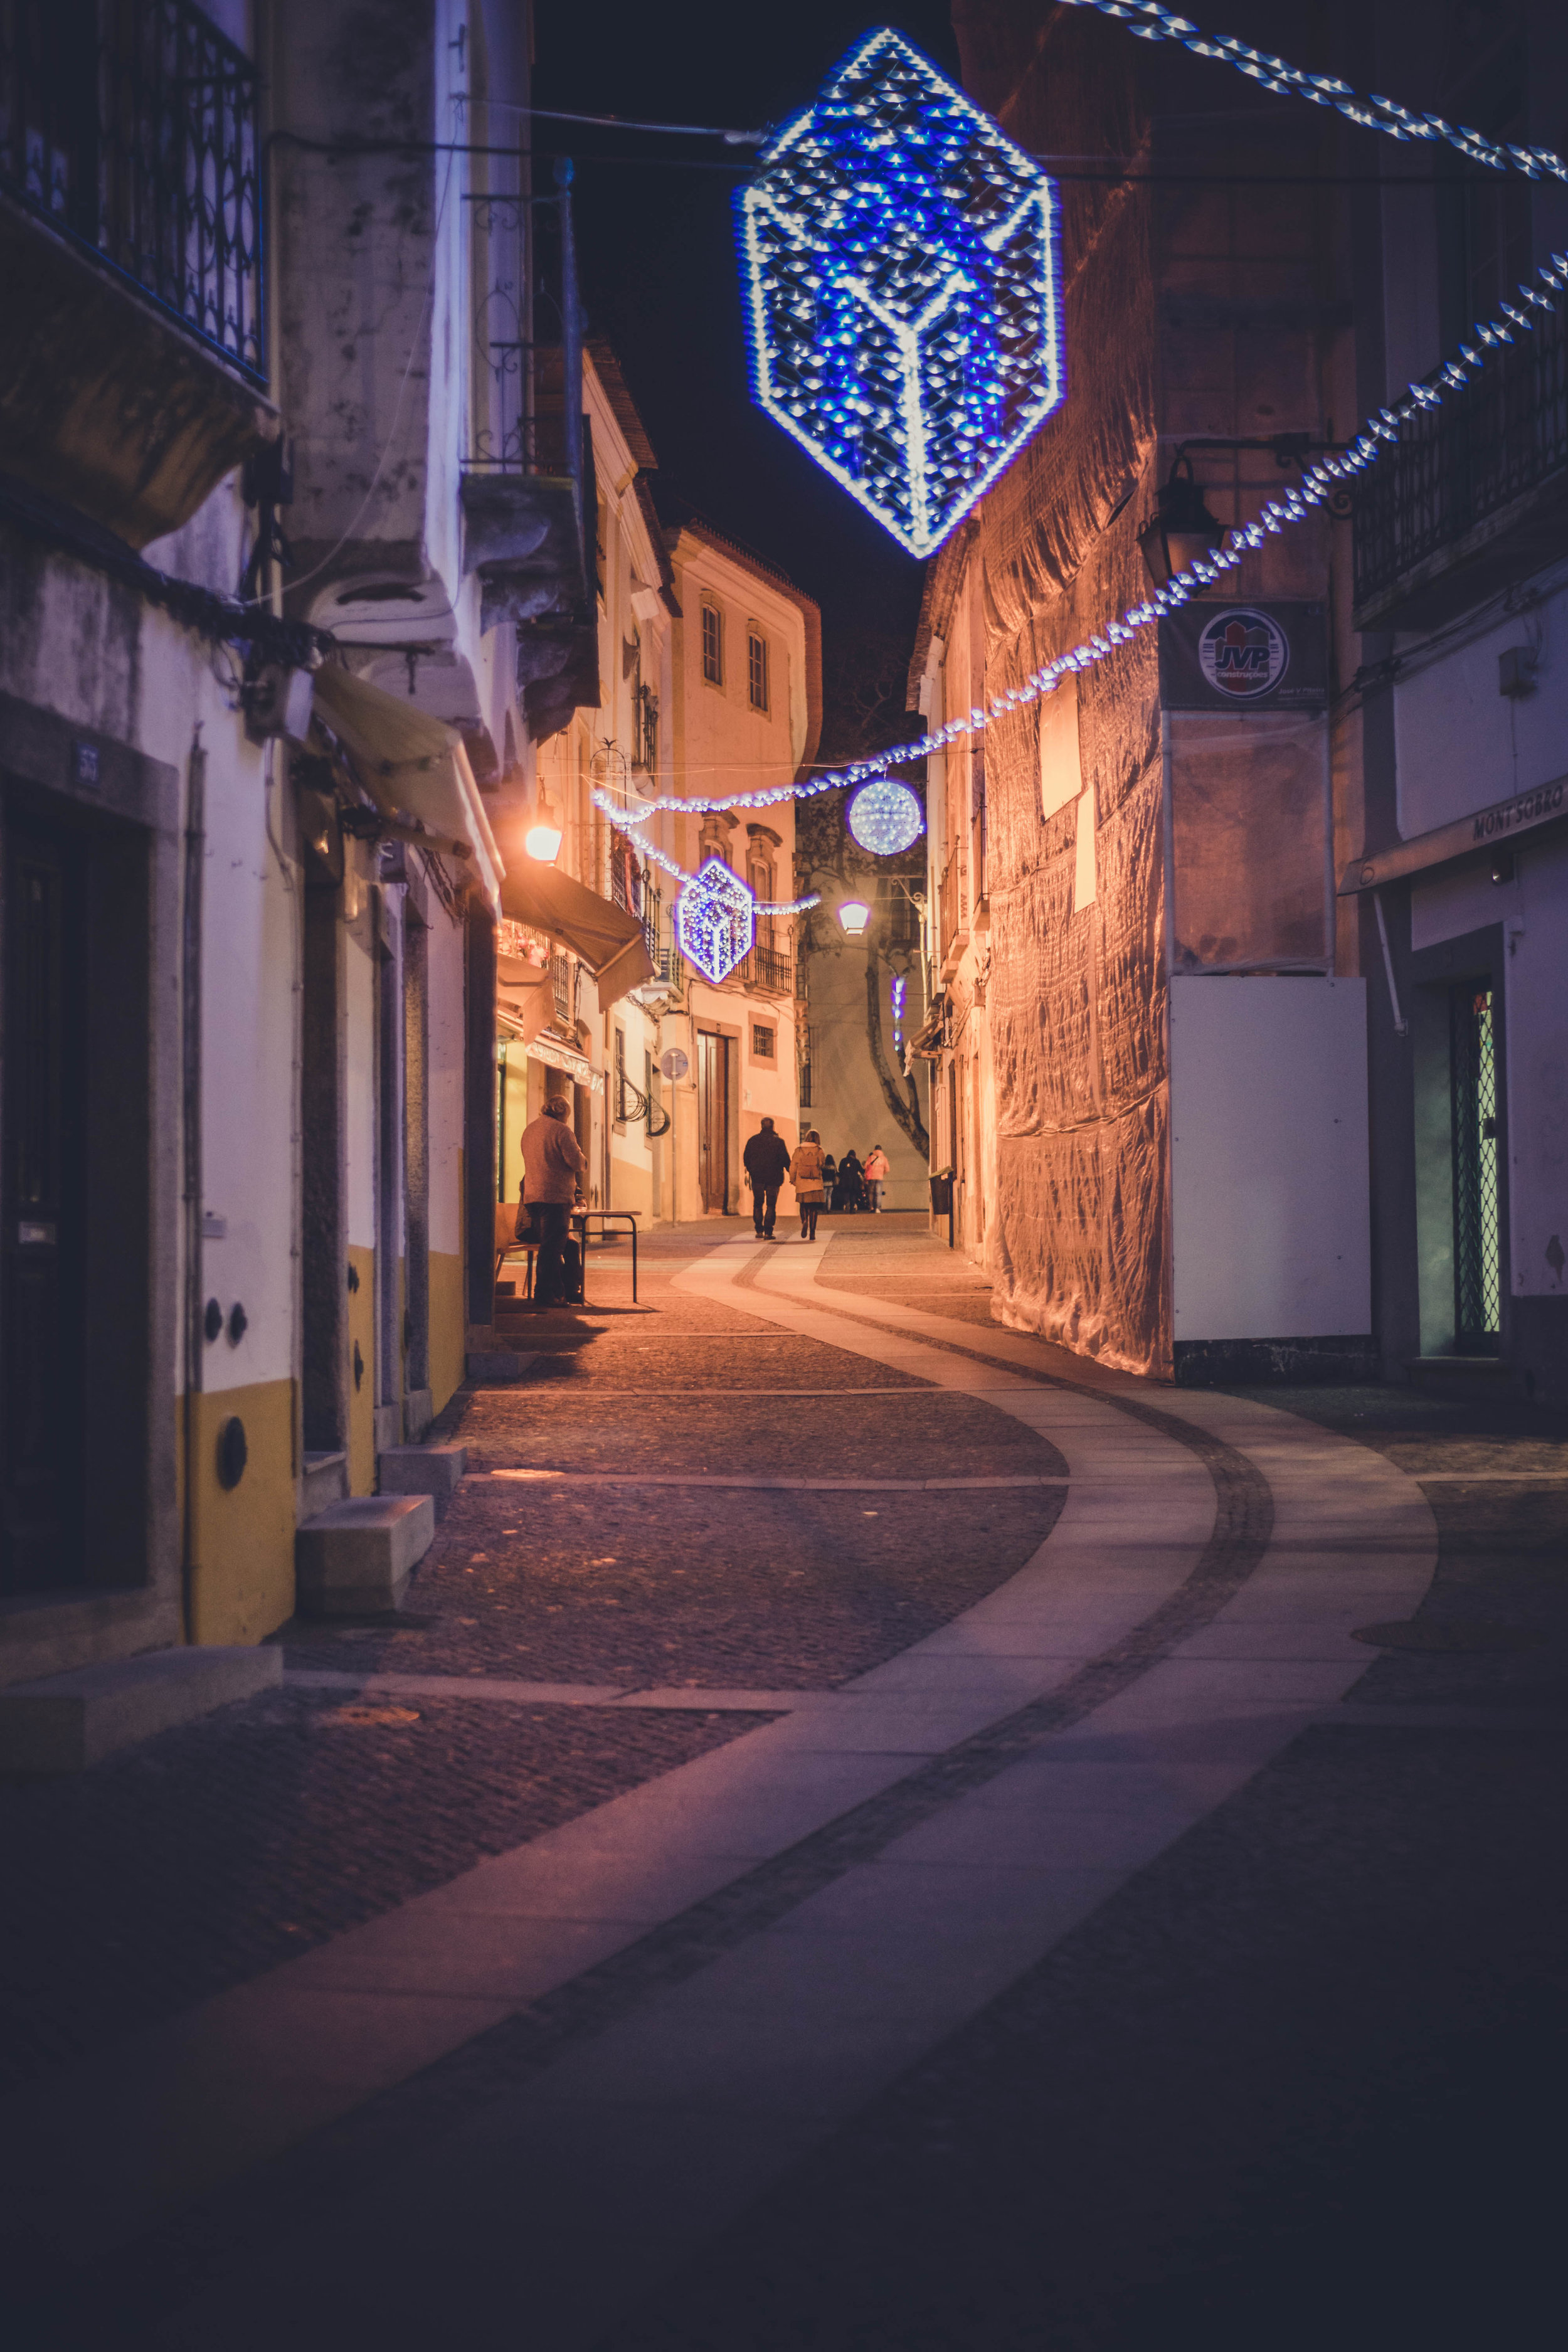 Evora. Roman Ruins. Portugal. Alentejo. Piliers. Roman city. ancient roman town. Blue sky. travel. adventure. history. historical. wine. architecture. side street. night time street.jpg